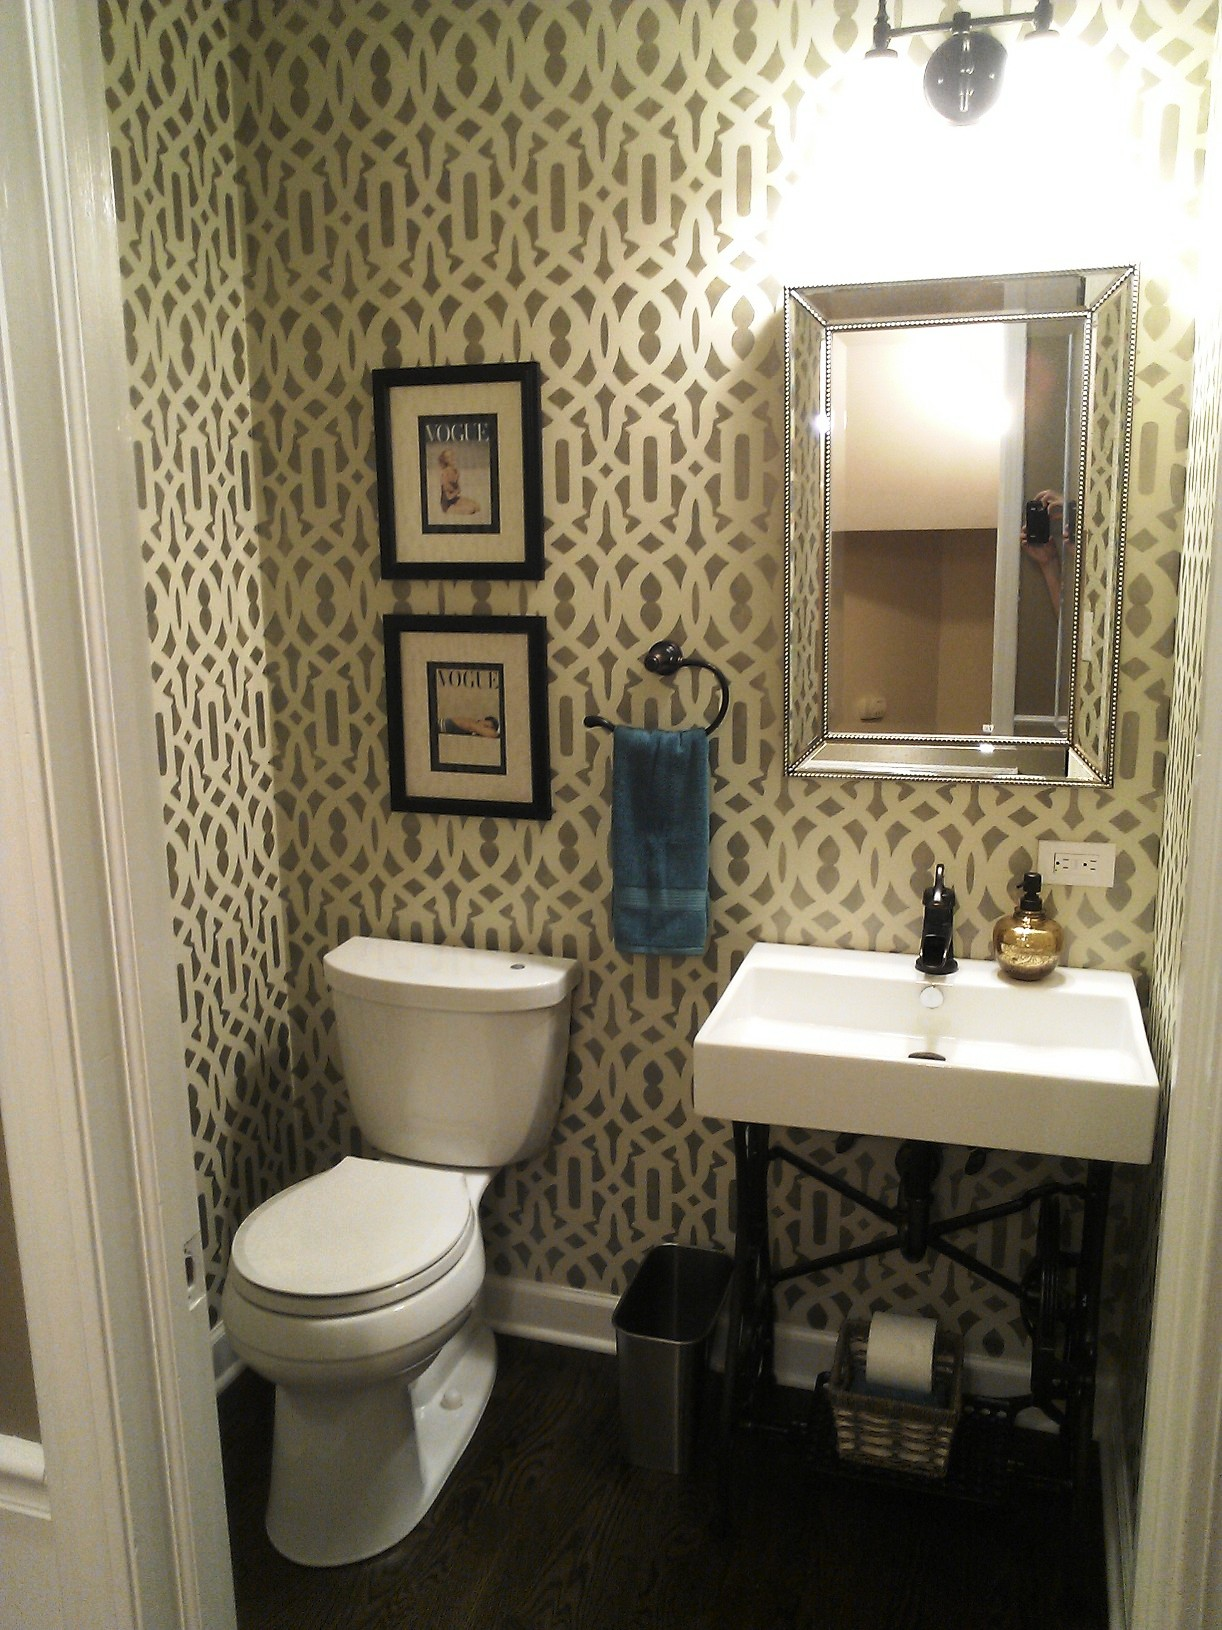 Designer Adds Her Personal Touch To First Floor Powder Room Normandy Remodeling